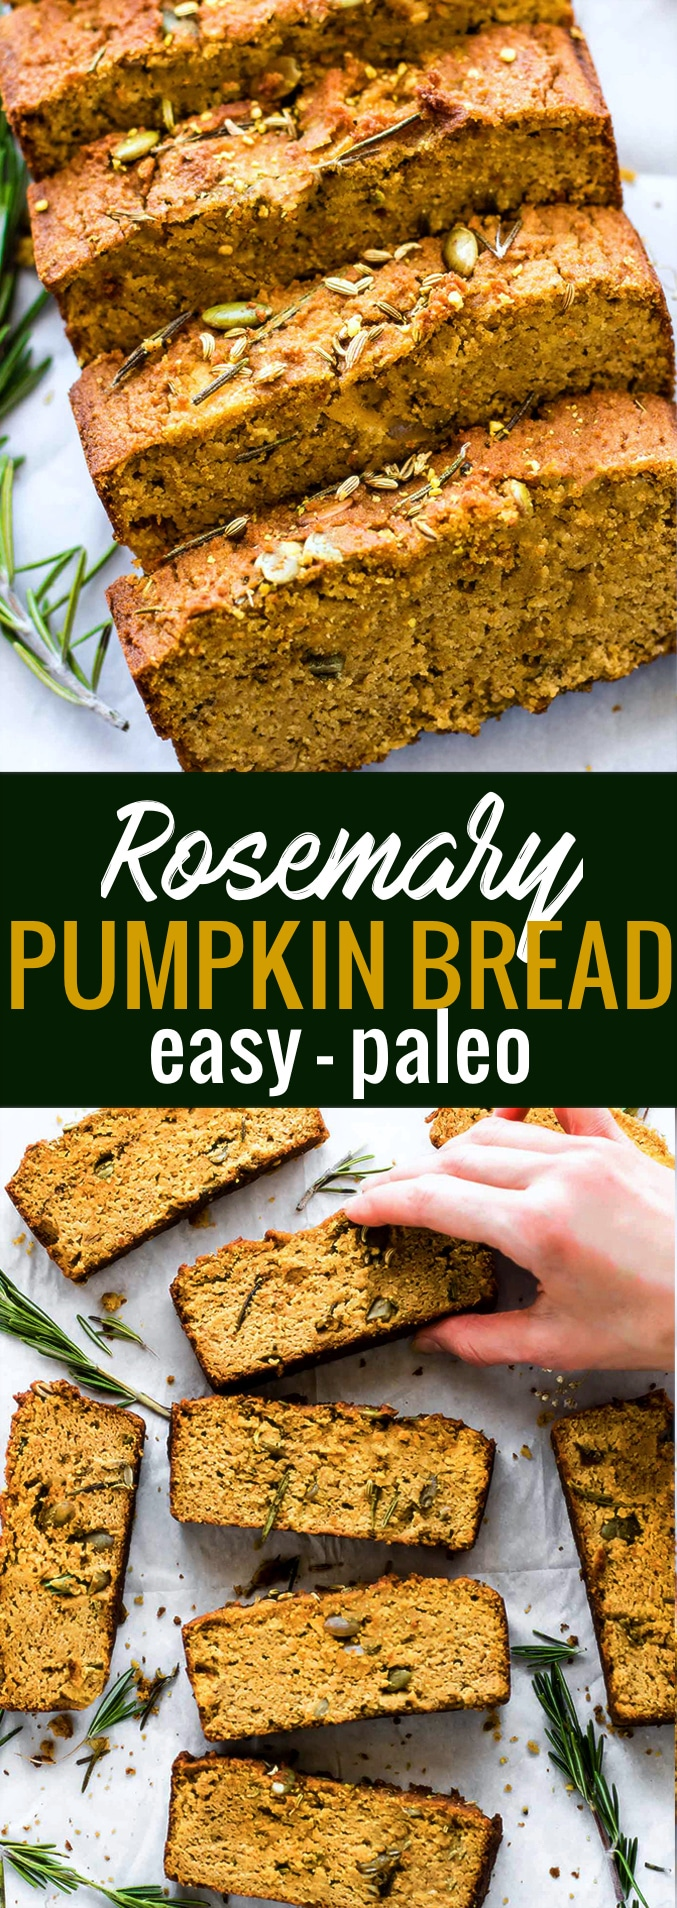 Rosemary PALEO PUMPKIN BREAD with pumpkin seeds! Have you tried savory Pumpkin Bread? It's simple to make and delicious! This Rosemary paleo pumpkin bread is the perfect healthy snack, breakfast, or accompaniment to any soup or chili. @COTTERCRUNCH